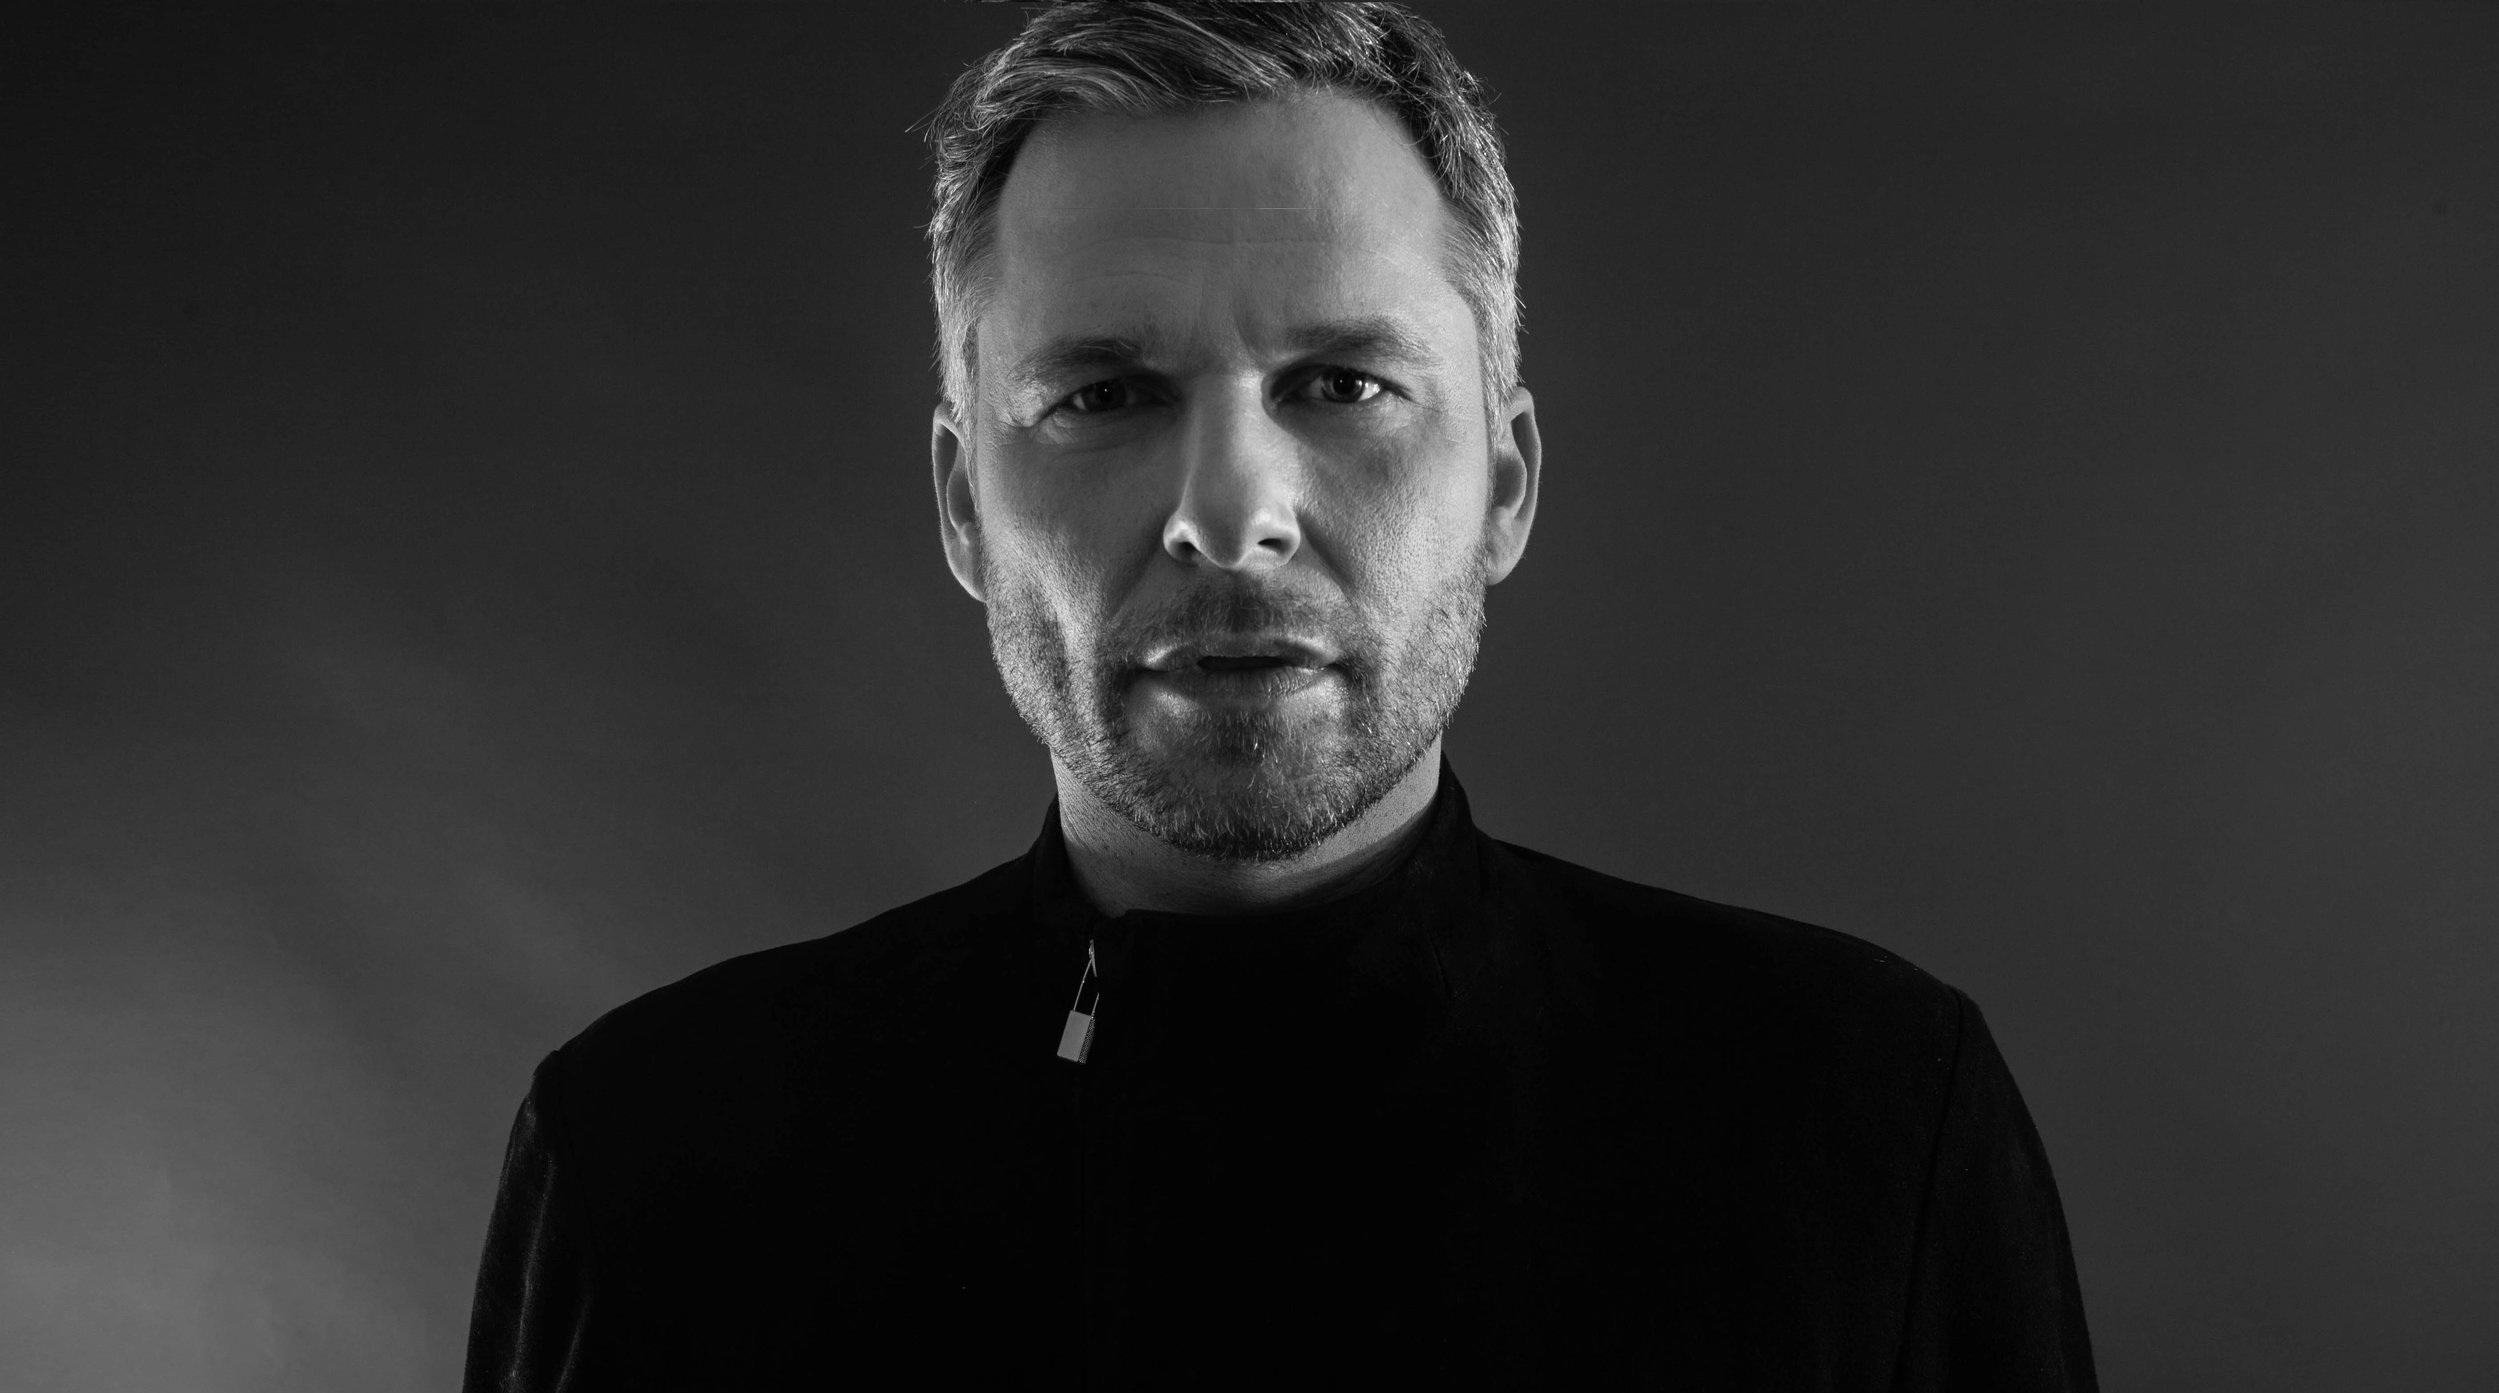 tINI - Blond Galipette (Martin Buttrich Remix) [TECH-HOUSE] Remixing tINI's Desolat-released 'Blond Galipatte', Martin Buttrich brims his engineering skills on full display, demonstrating his penchant for groove. This is a banger.